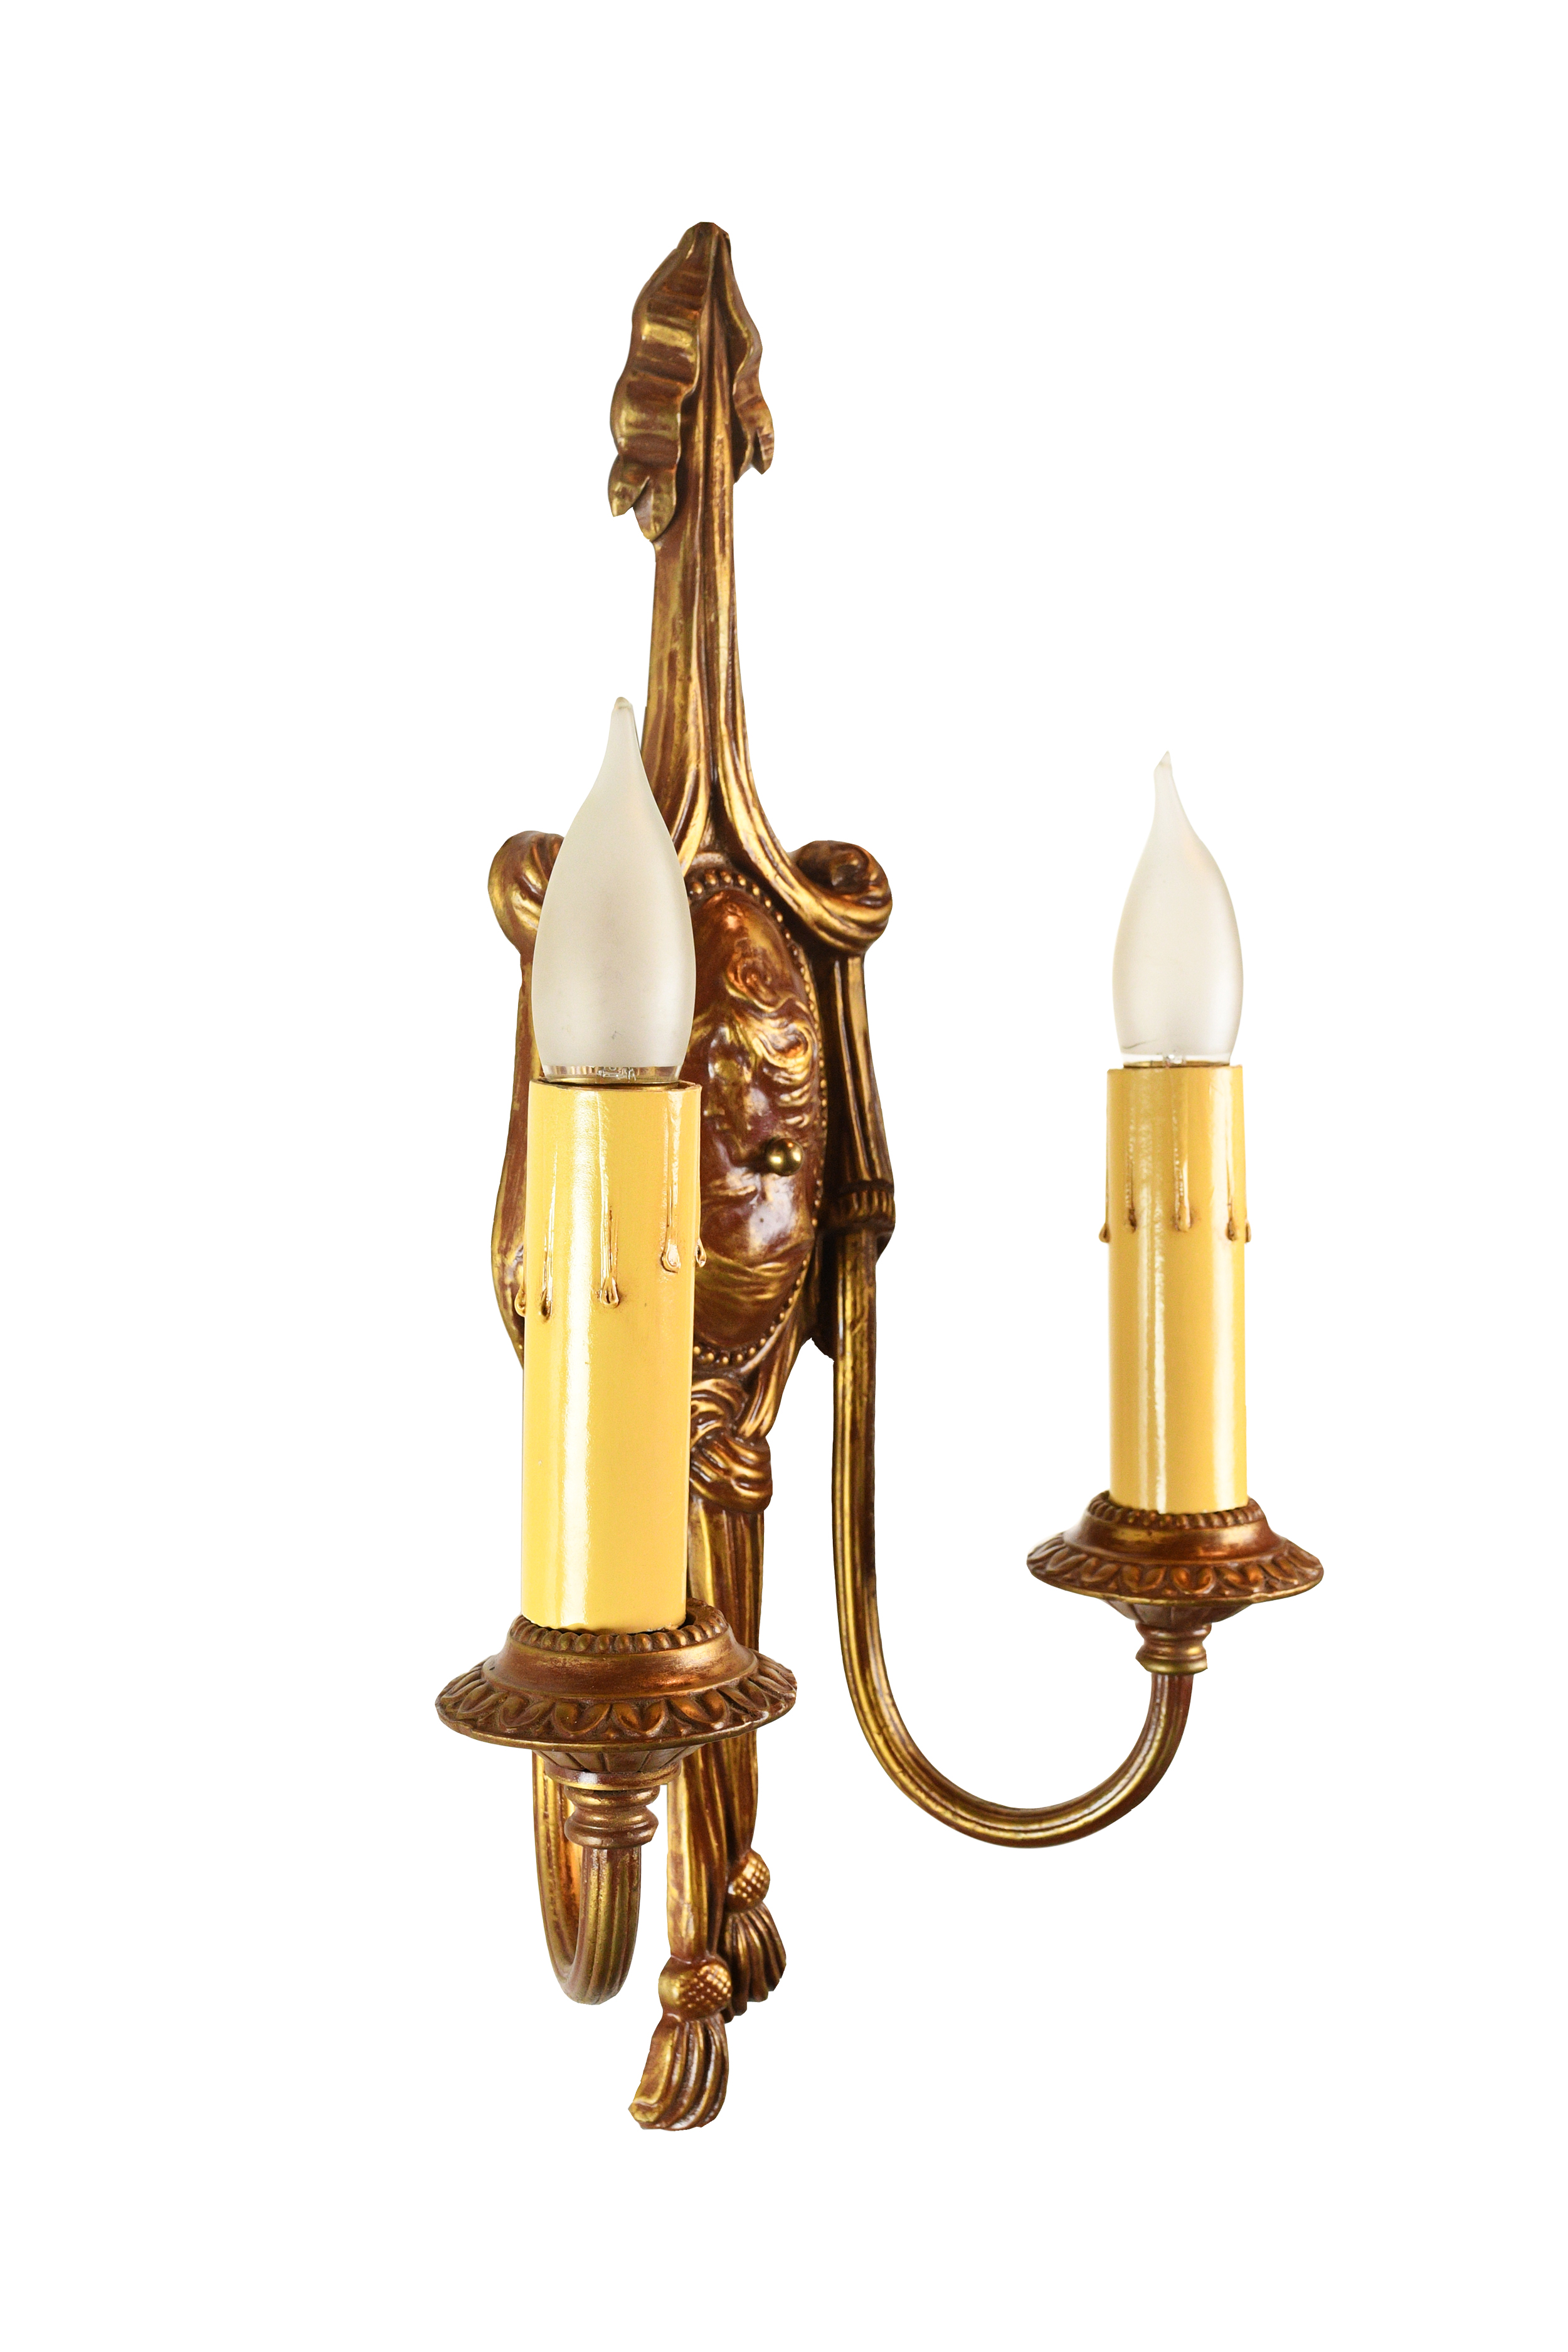 41018-french-2-arm-cameo-sconce-5.jpg